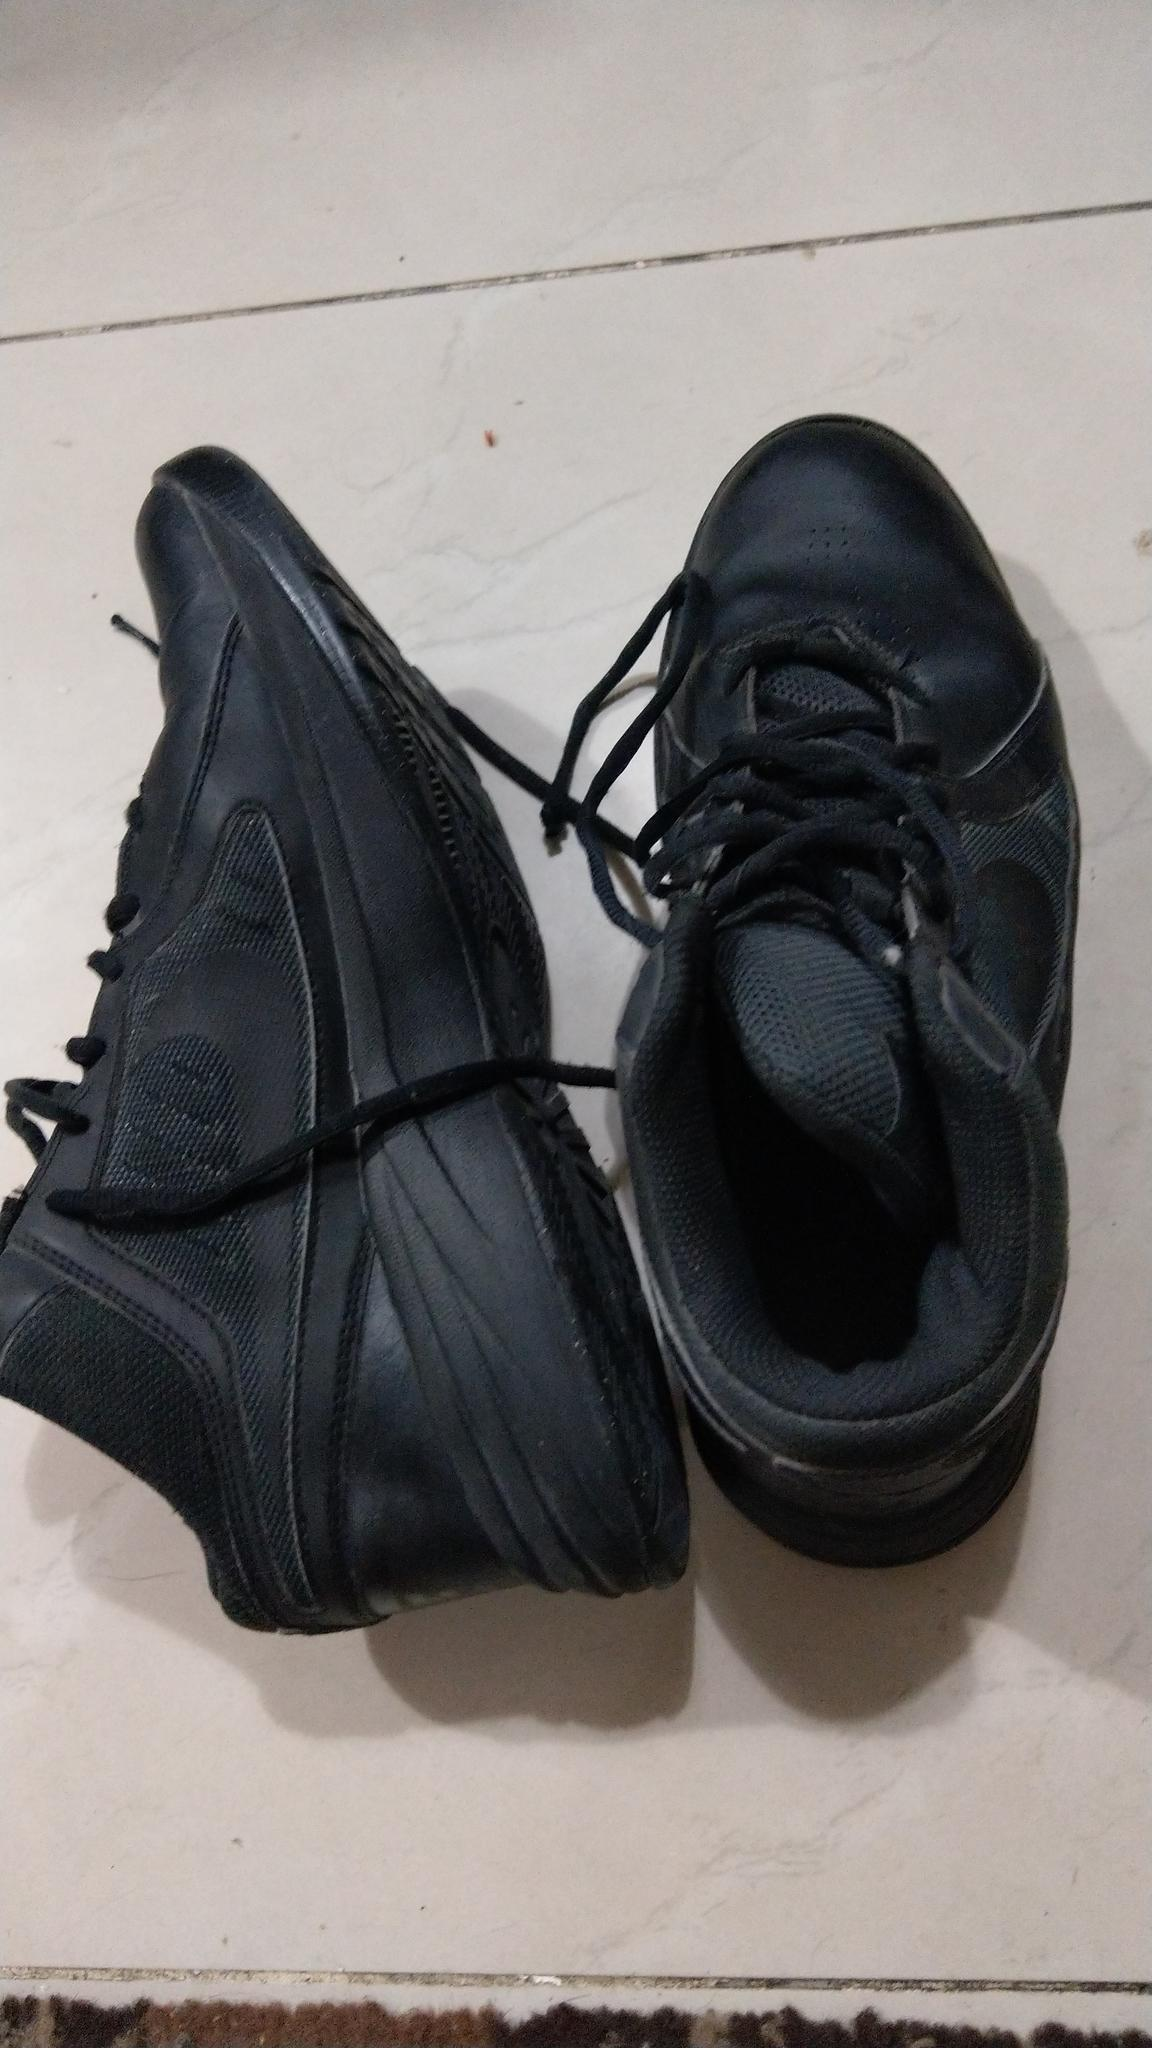 as new in its bag le confort, shoemart , Nike and